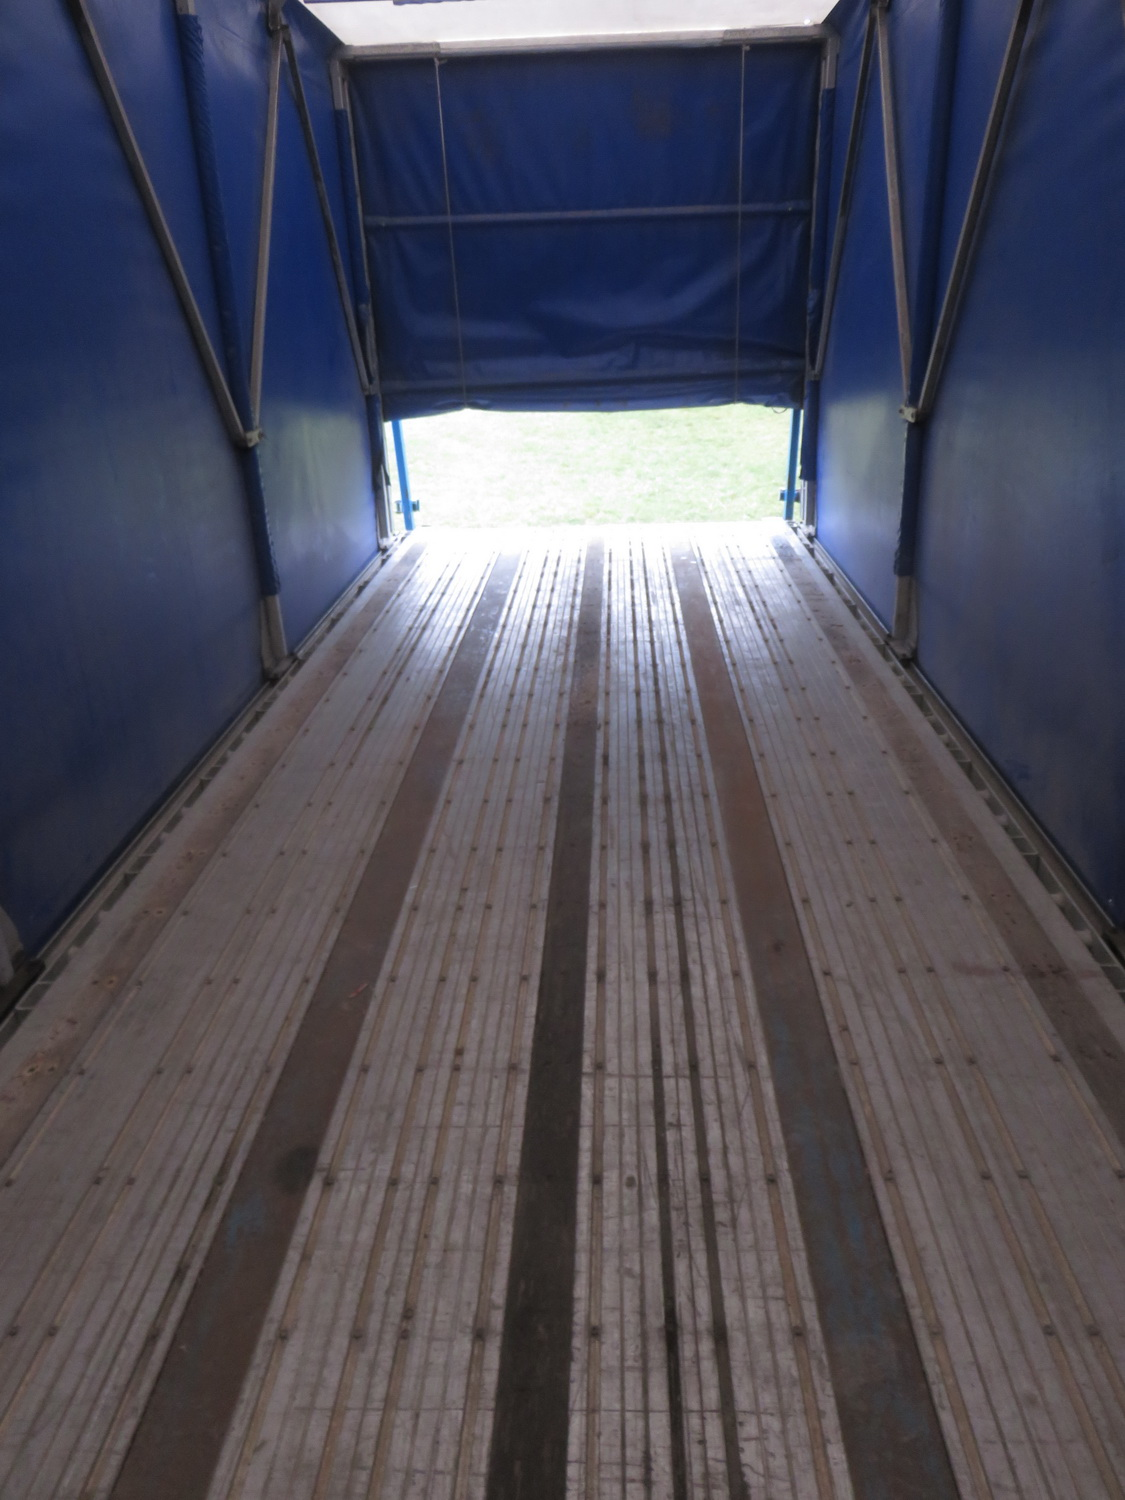 LODE KING 48' TANDEM AXLE BLUE CURTAIN SIDE TRAILER - S/N 2LDPA4829XC032084 - Image 2 of 6